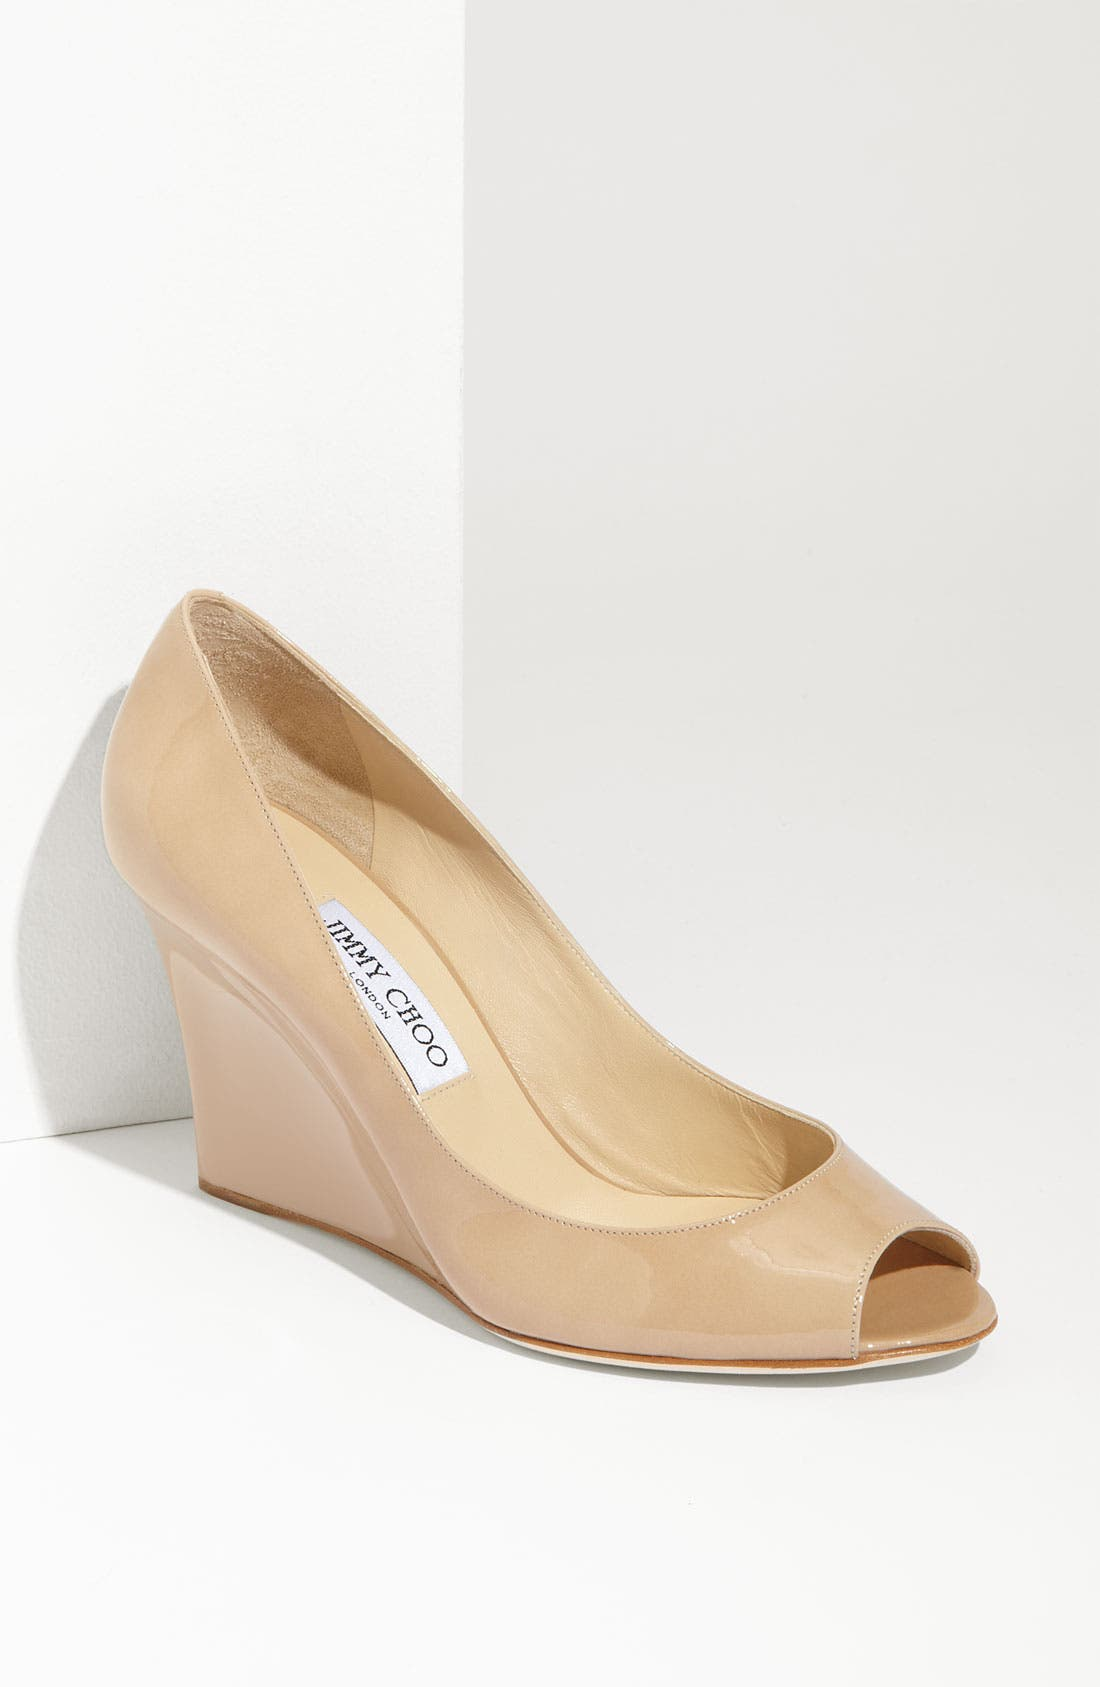 Alternate Image 1 Selected - Jimmy Choo 'Baxen' Peep Toe Wedge